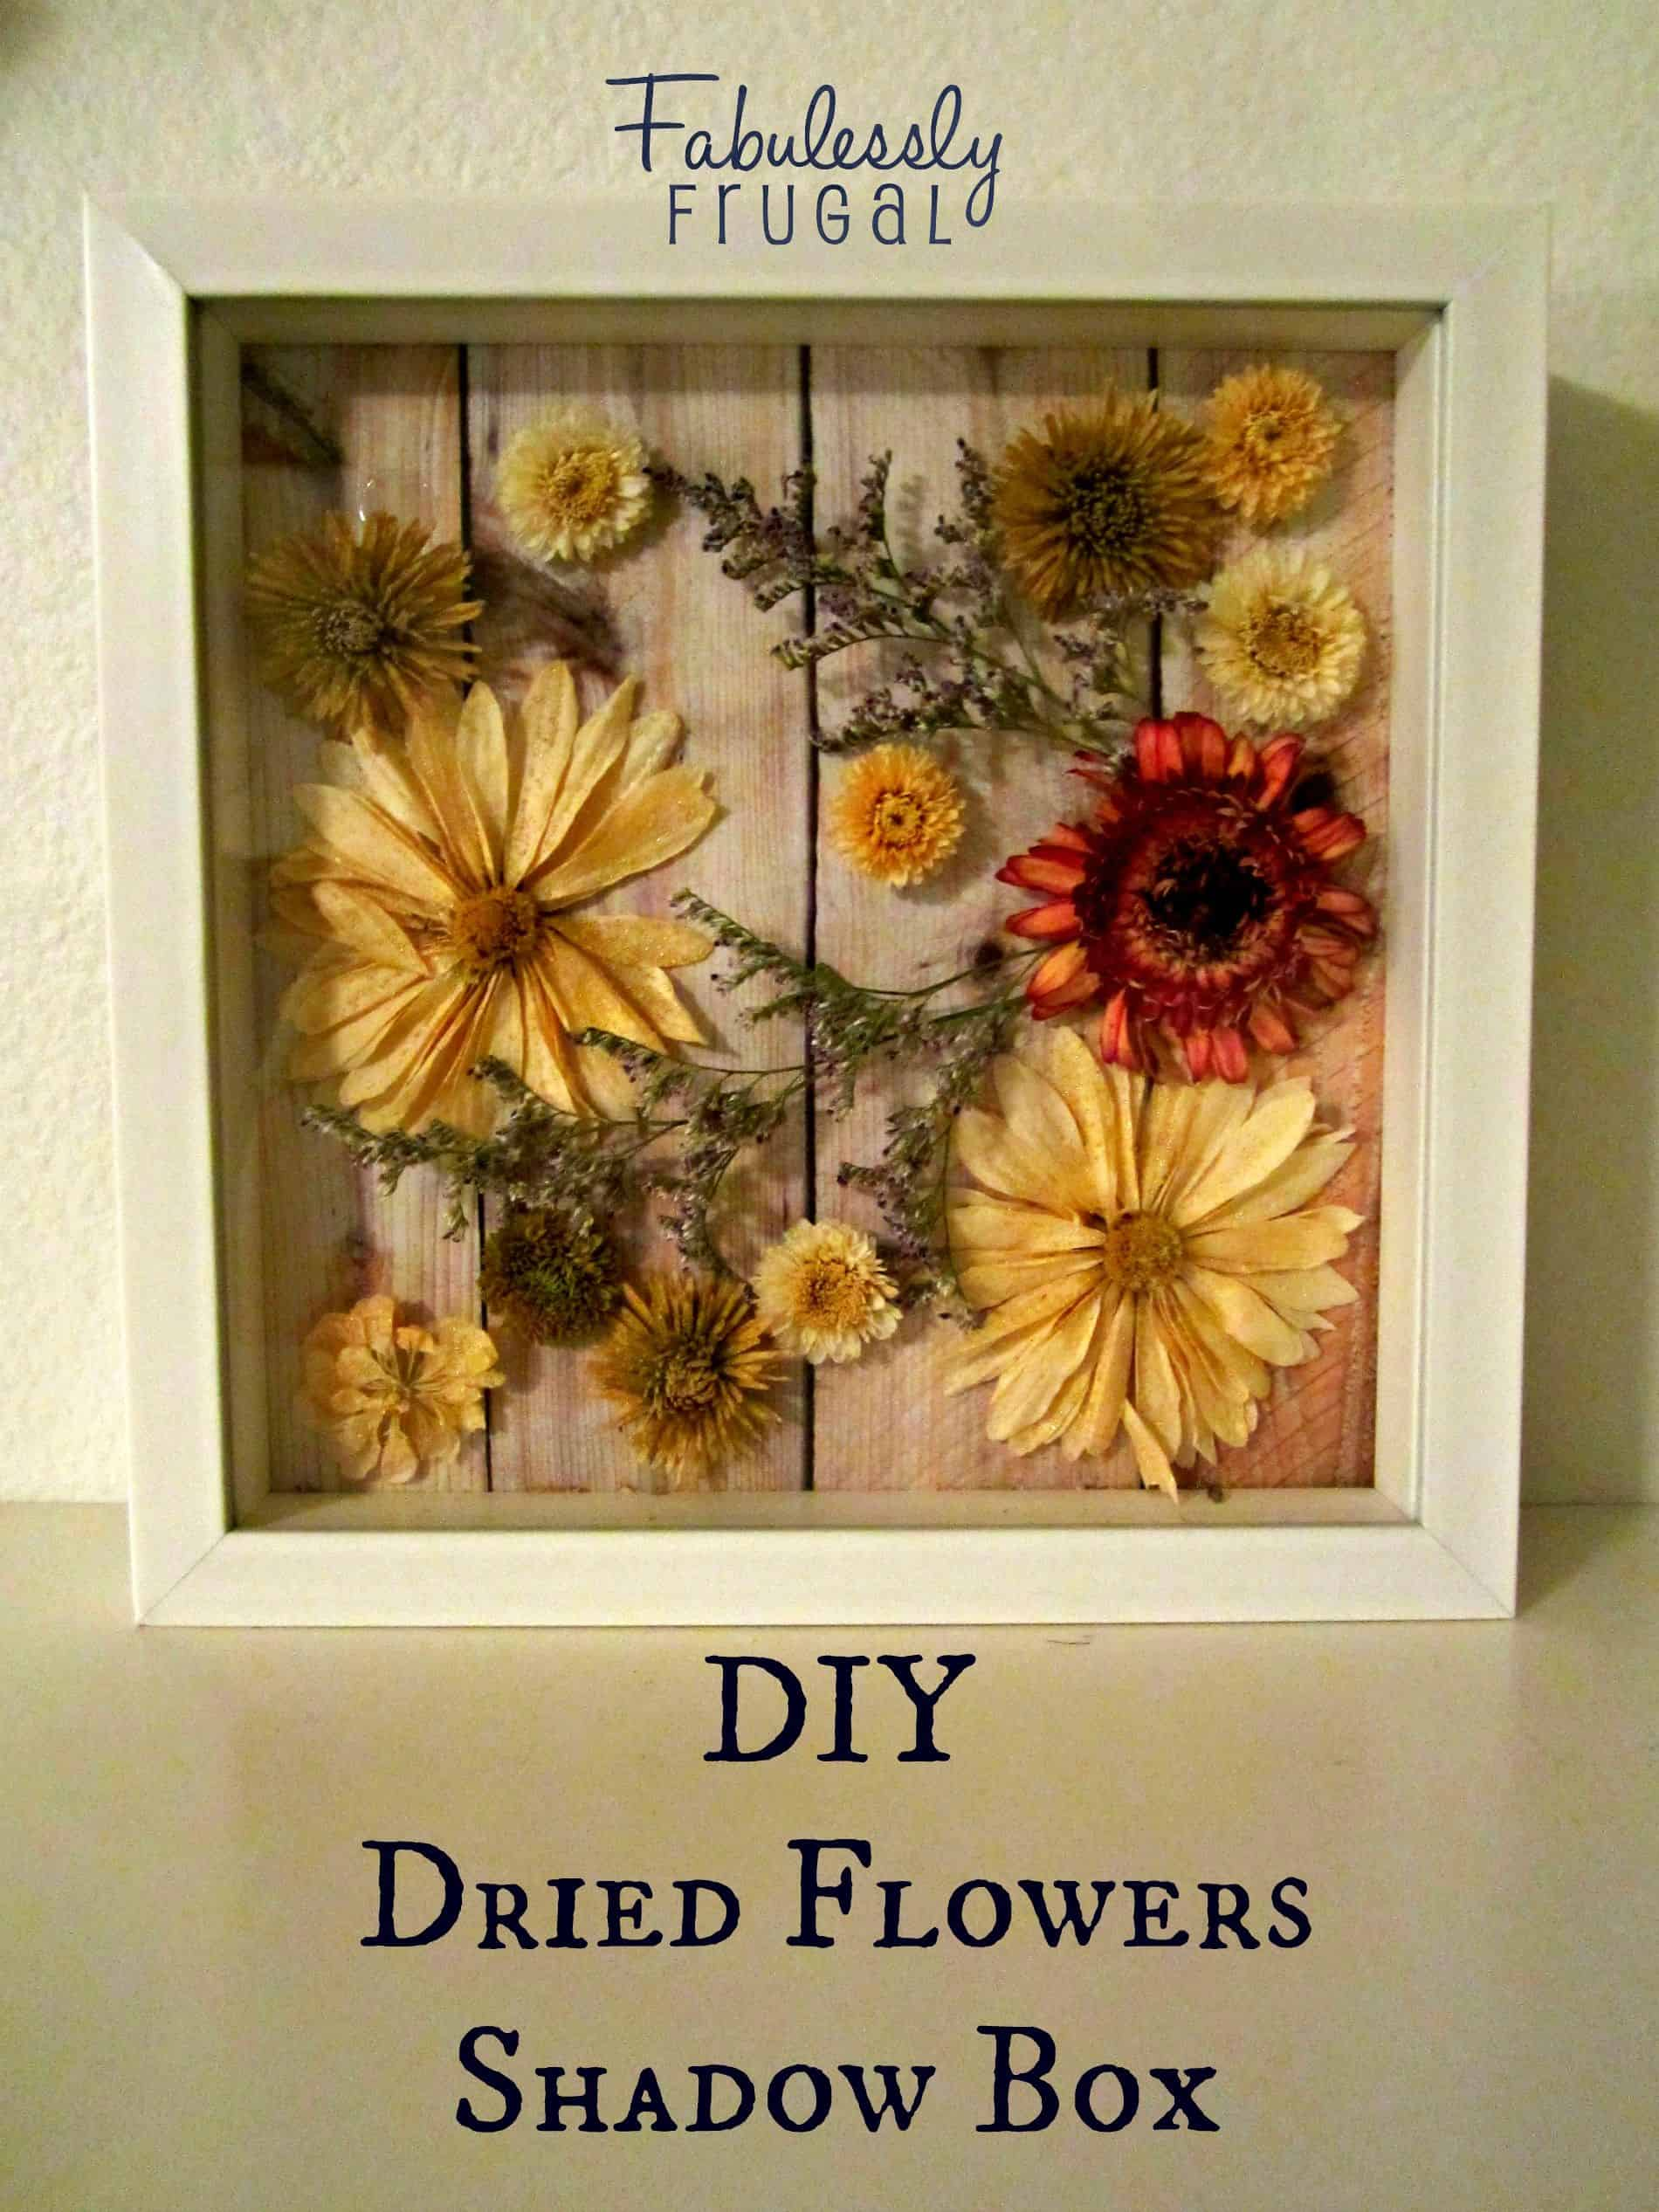 Diy dried flower shadow box